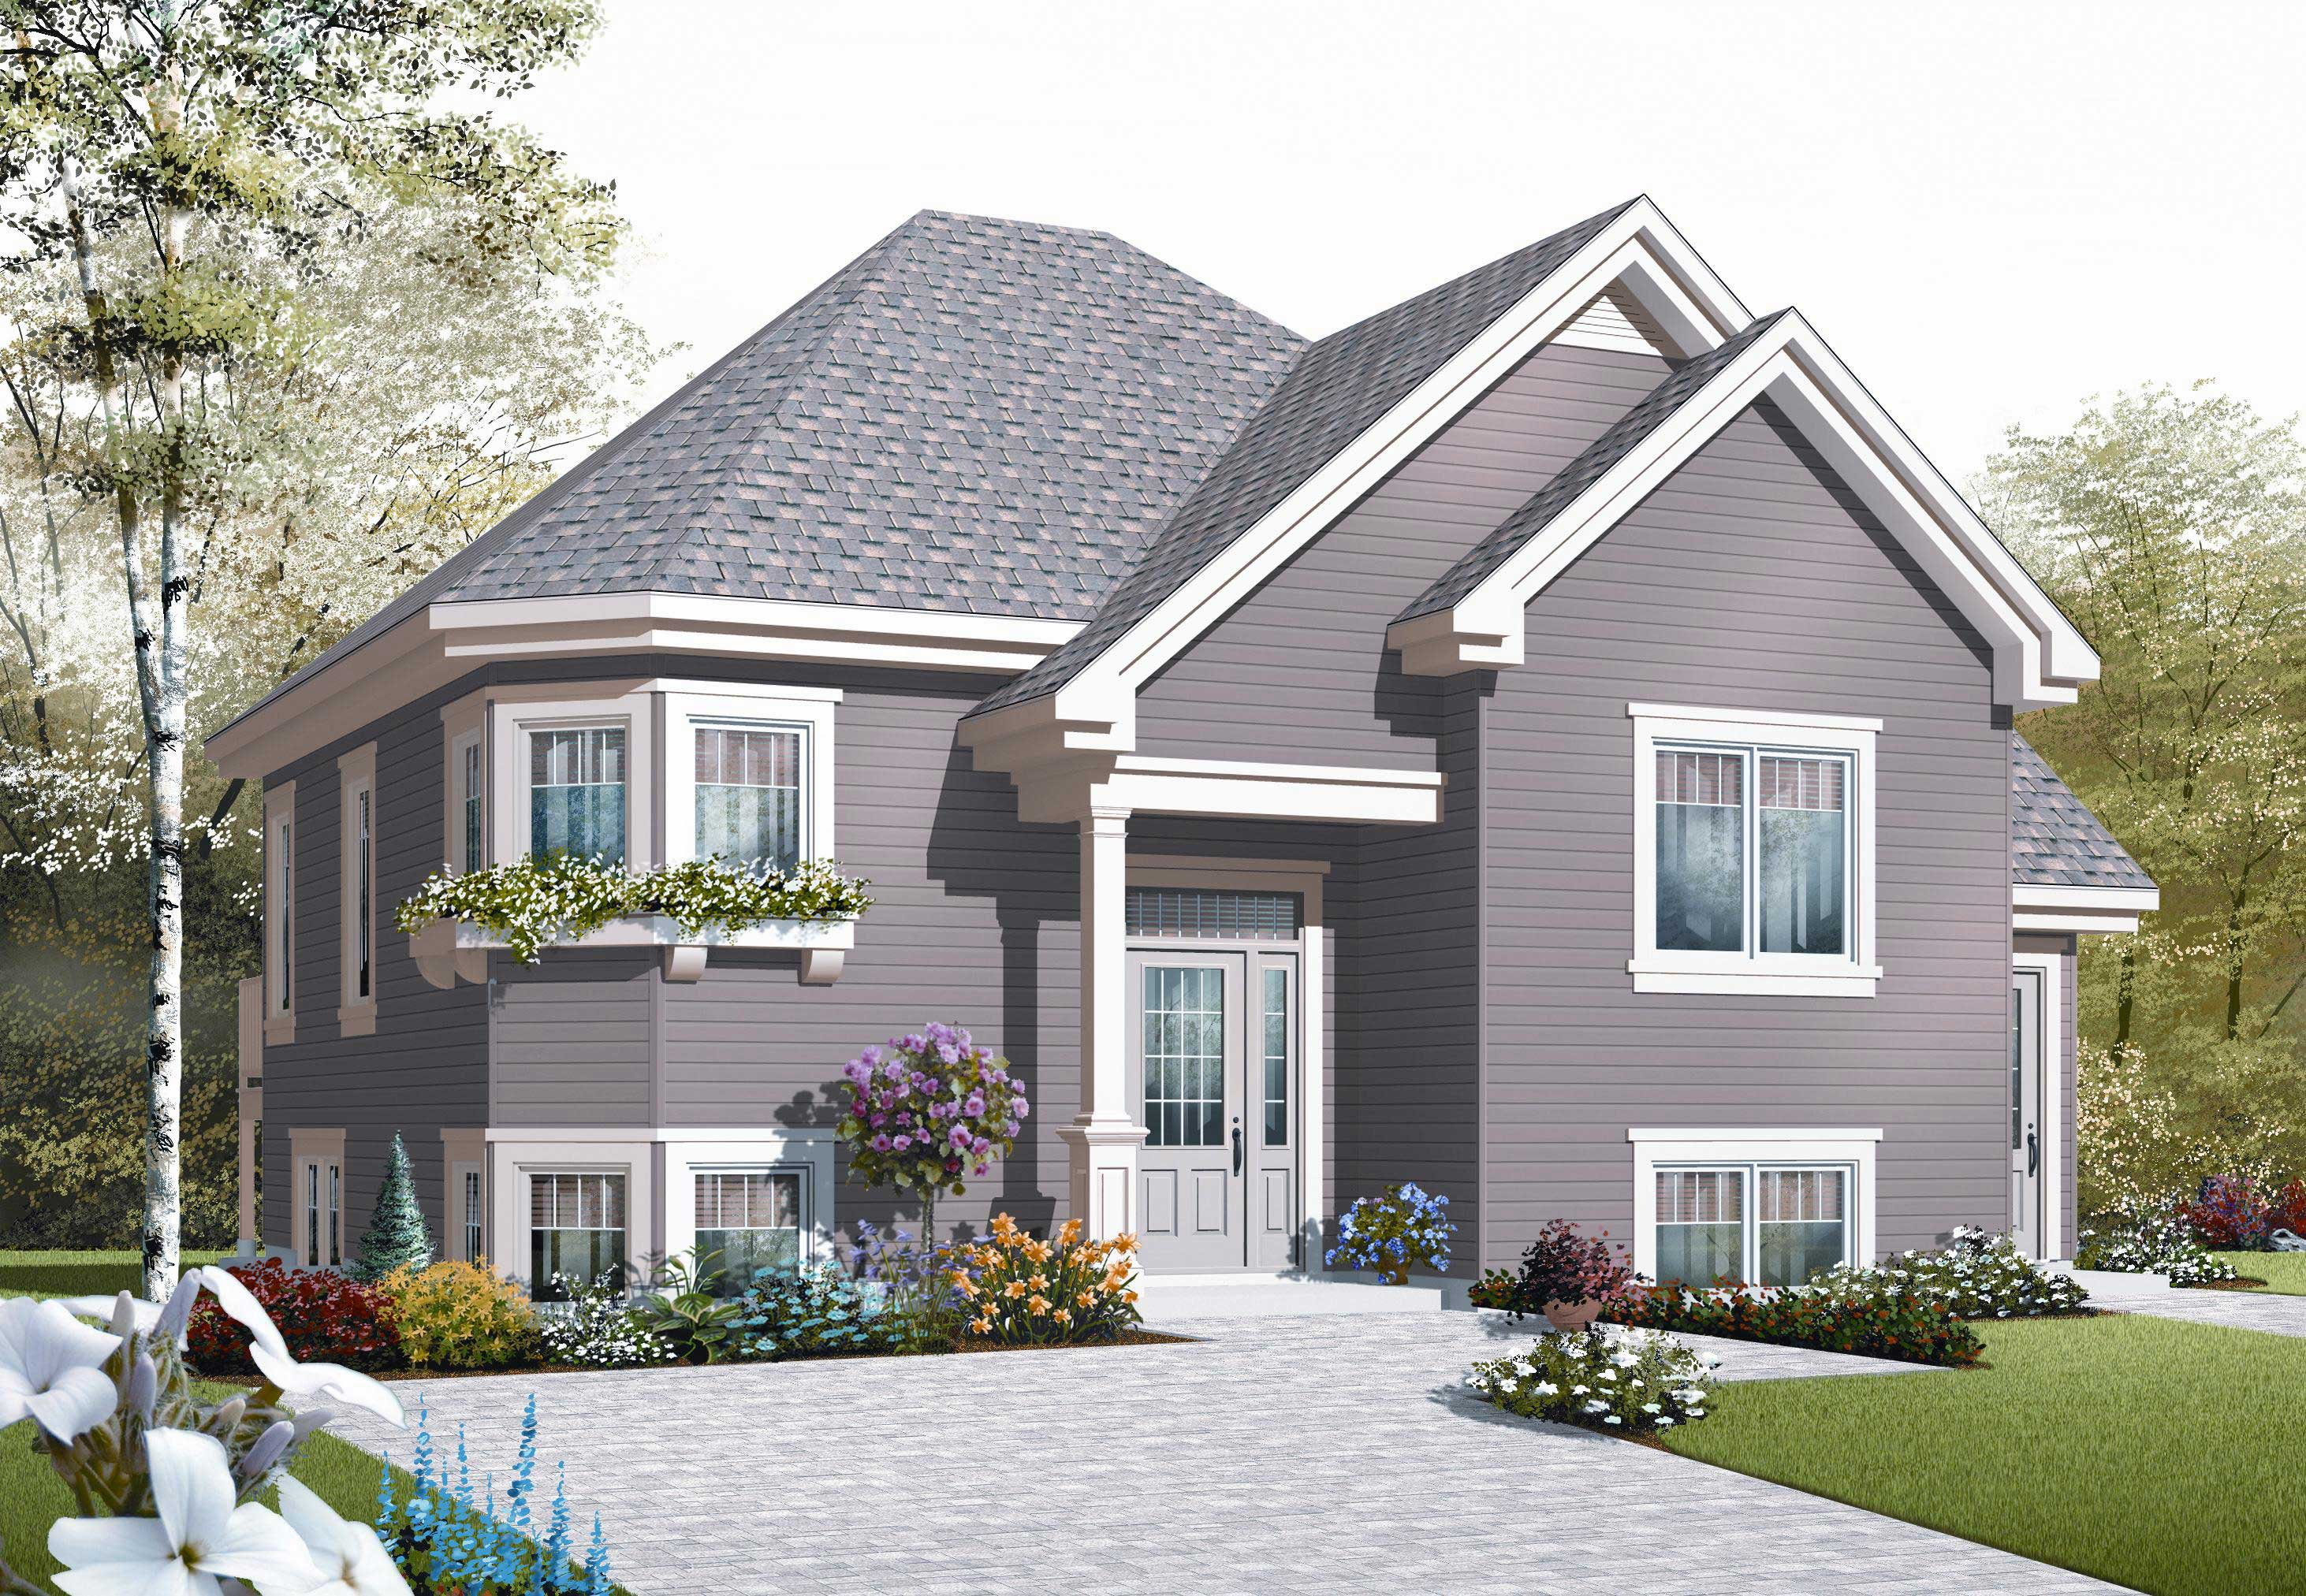 Traditional house plans home design dd 3322b for Traditional house plans